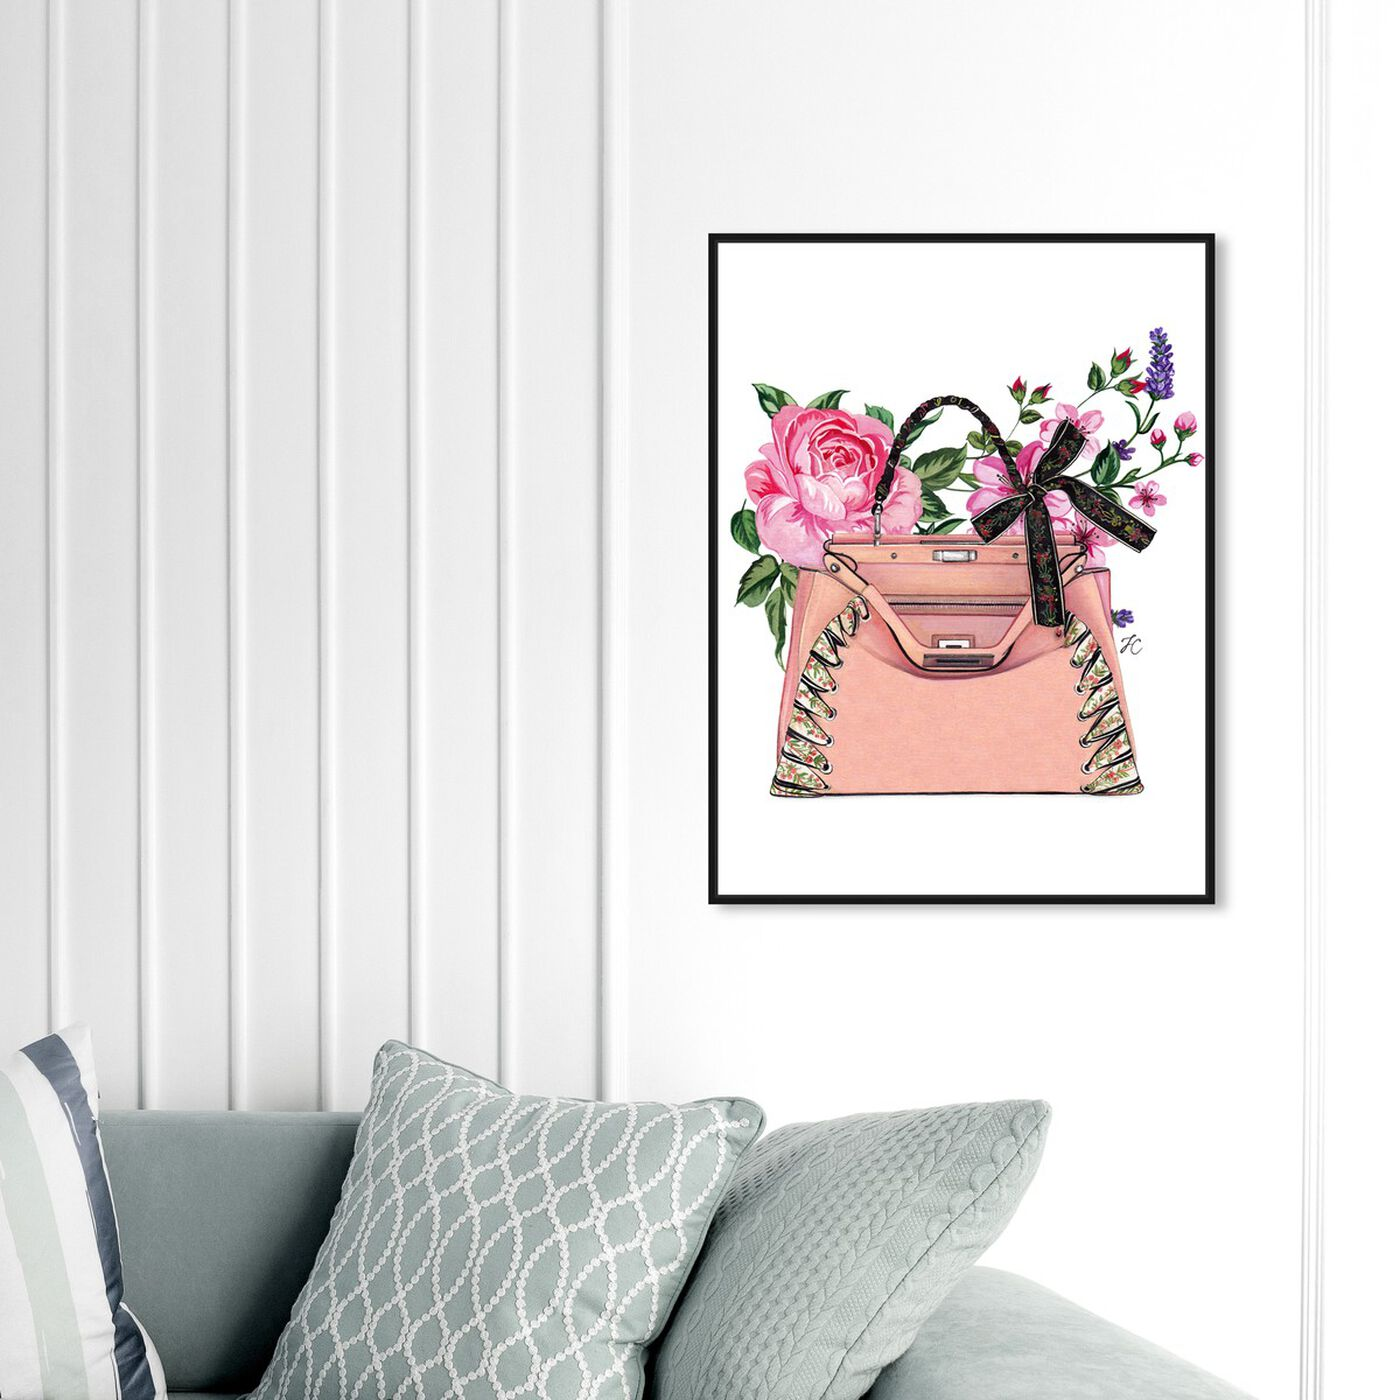 Hanging view of Doll Memories - Pink roses featuring fashion and glam and handbags art.